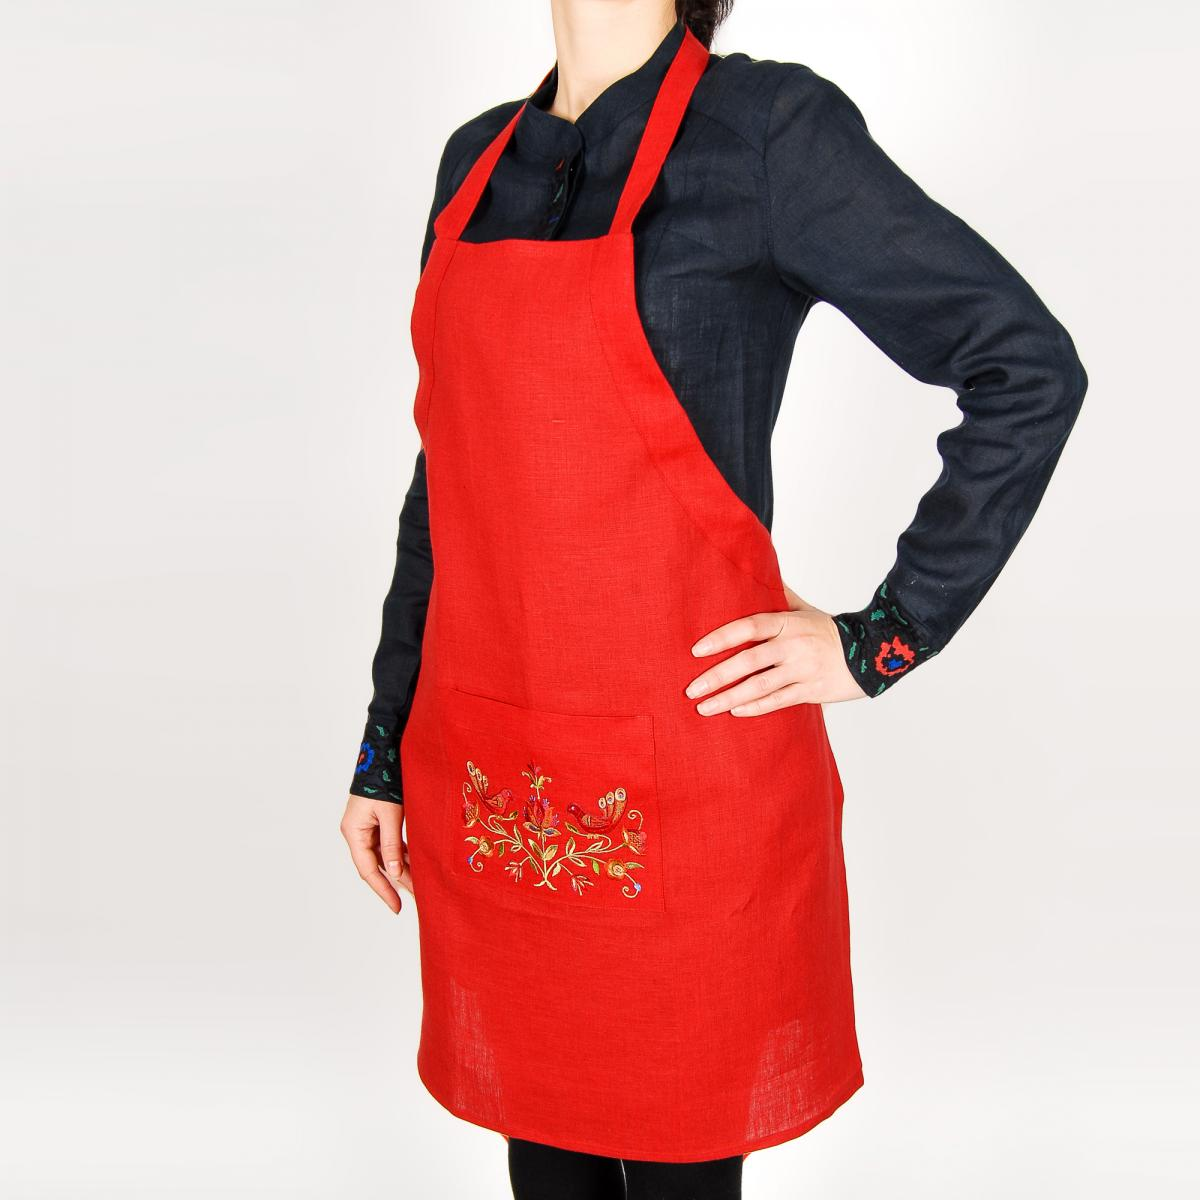 Apron for your kitchen with embroidery. Photo №3. | Narodnyi dim Ukraine